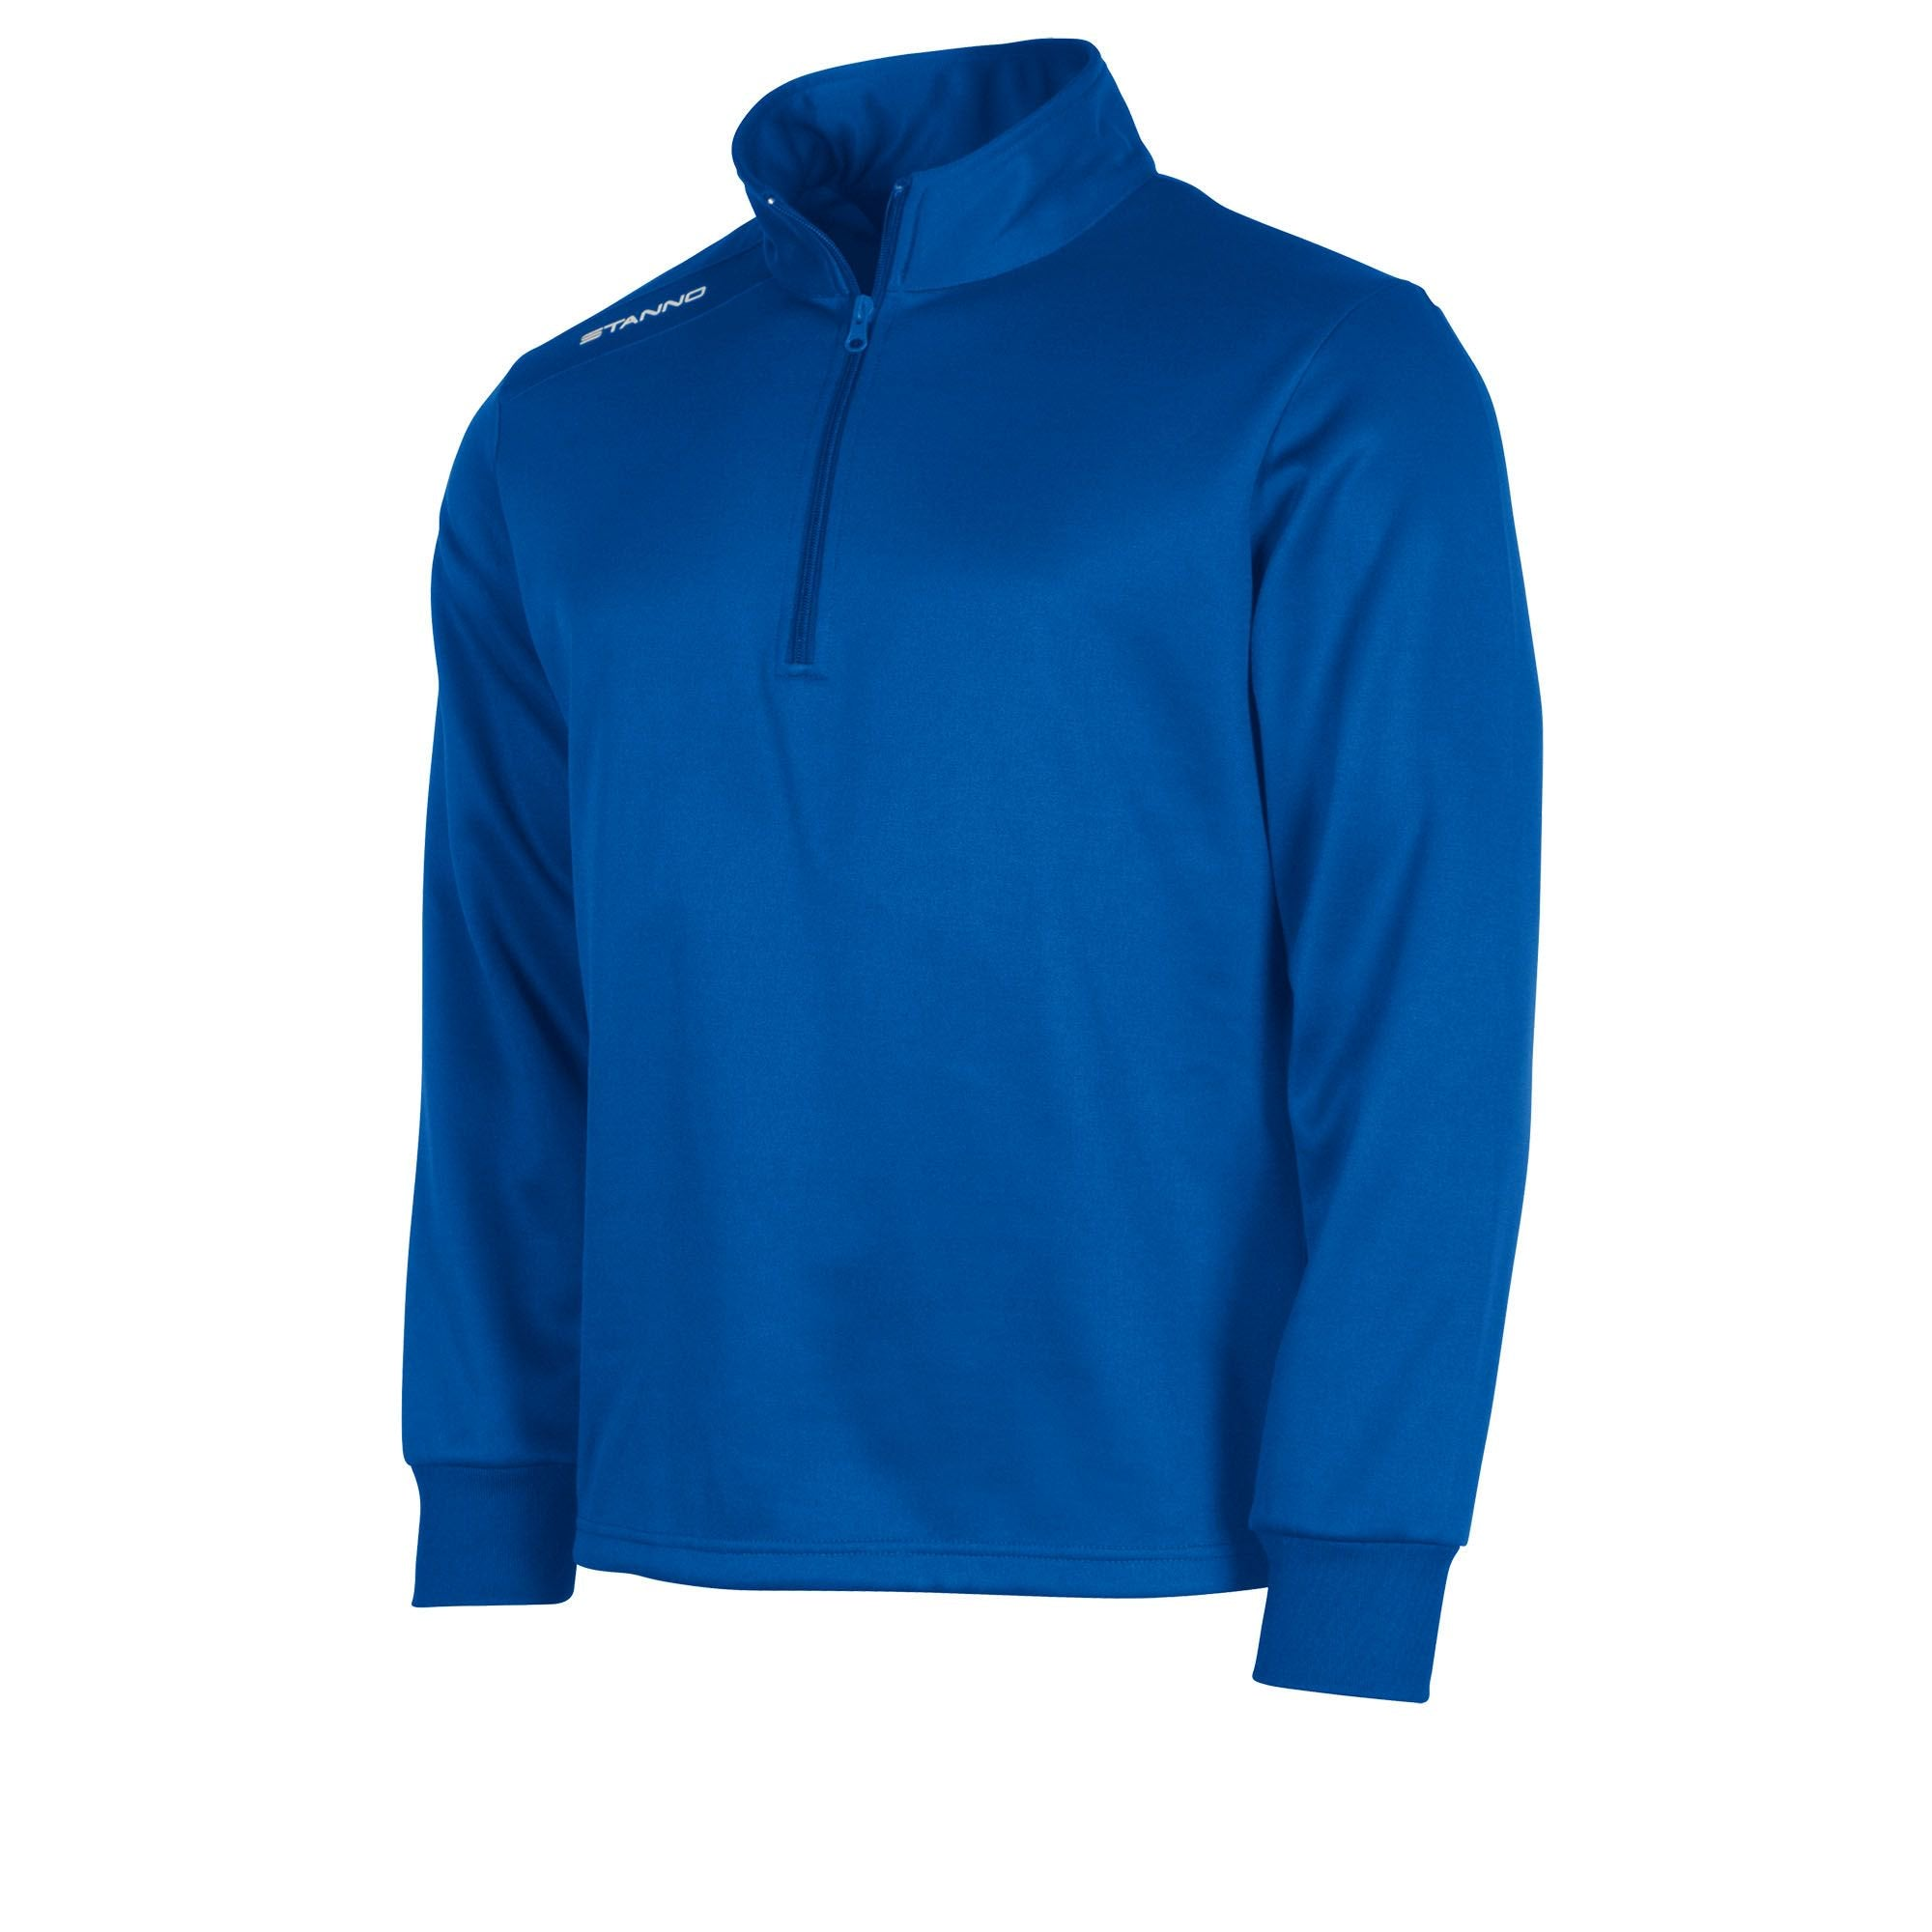 Royal blue Stanno Field half zip top with white Stanno printed logo on right shoulder